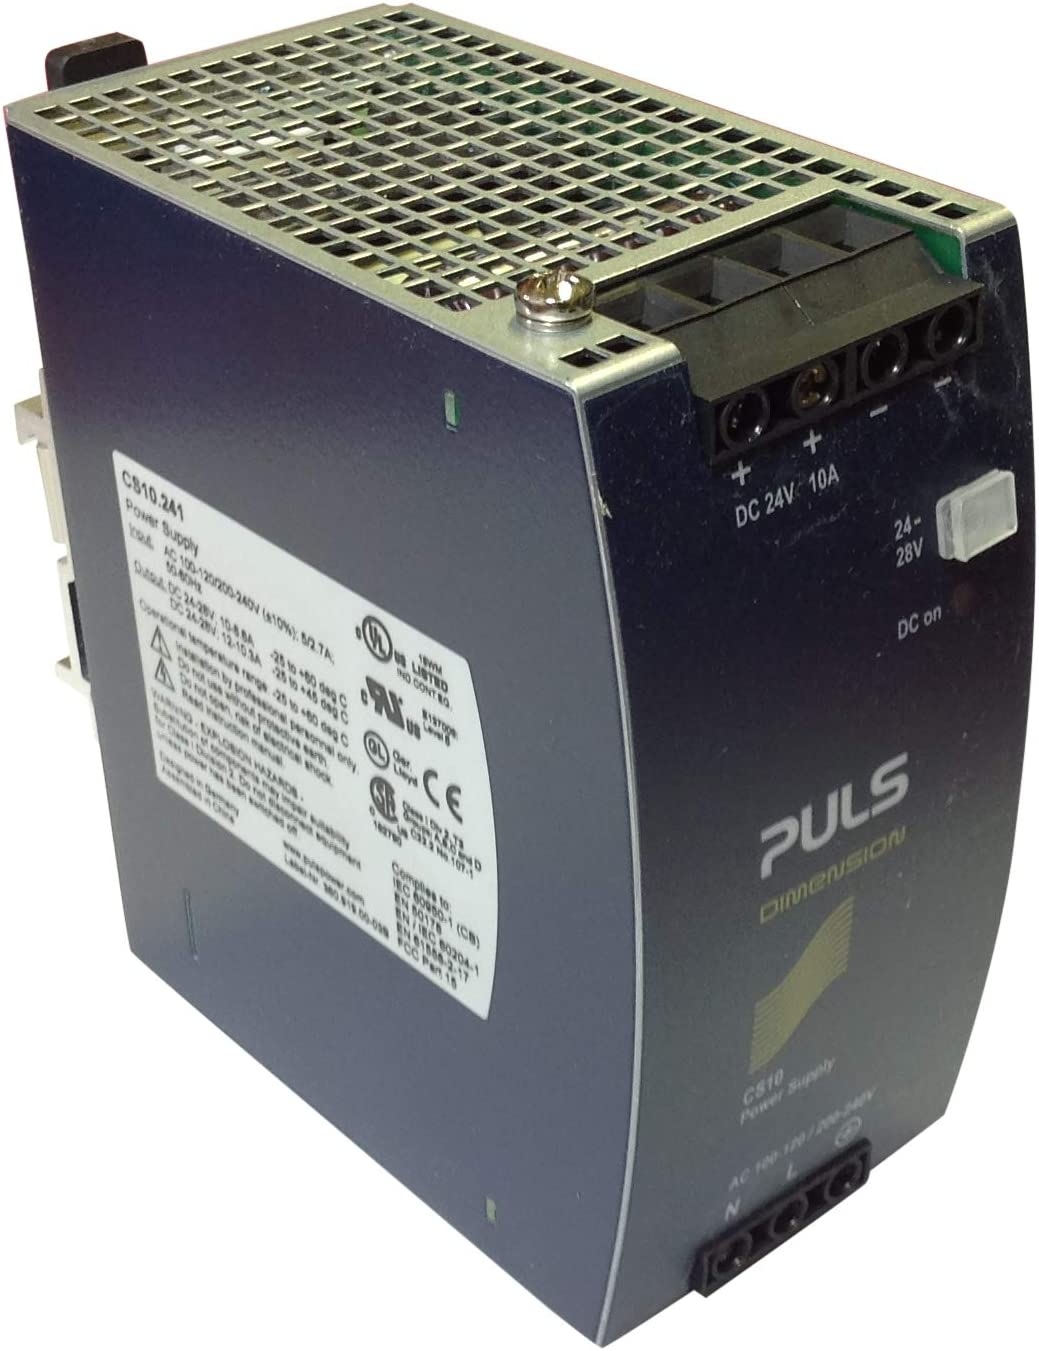 CS10.241 PULS 10A Power Supply